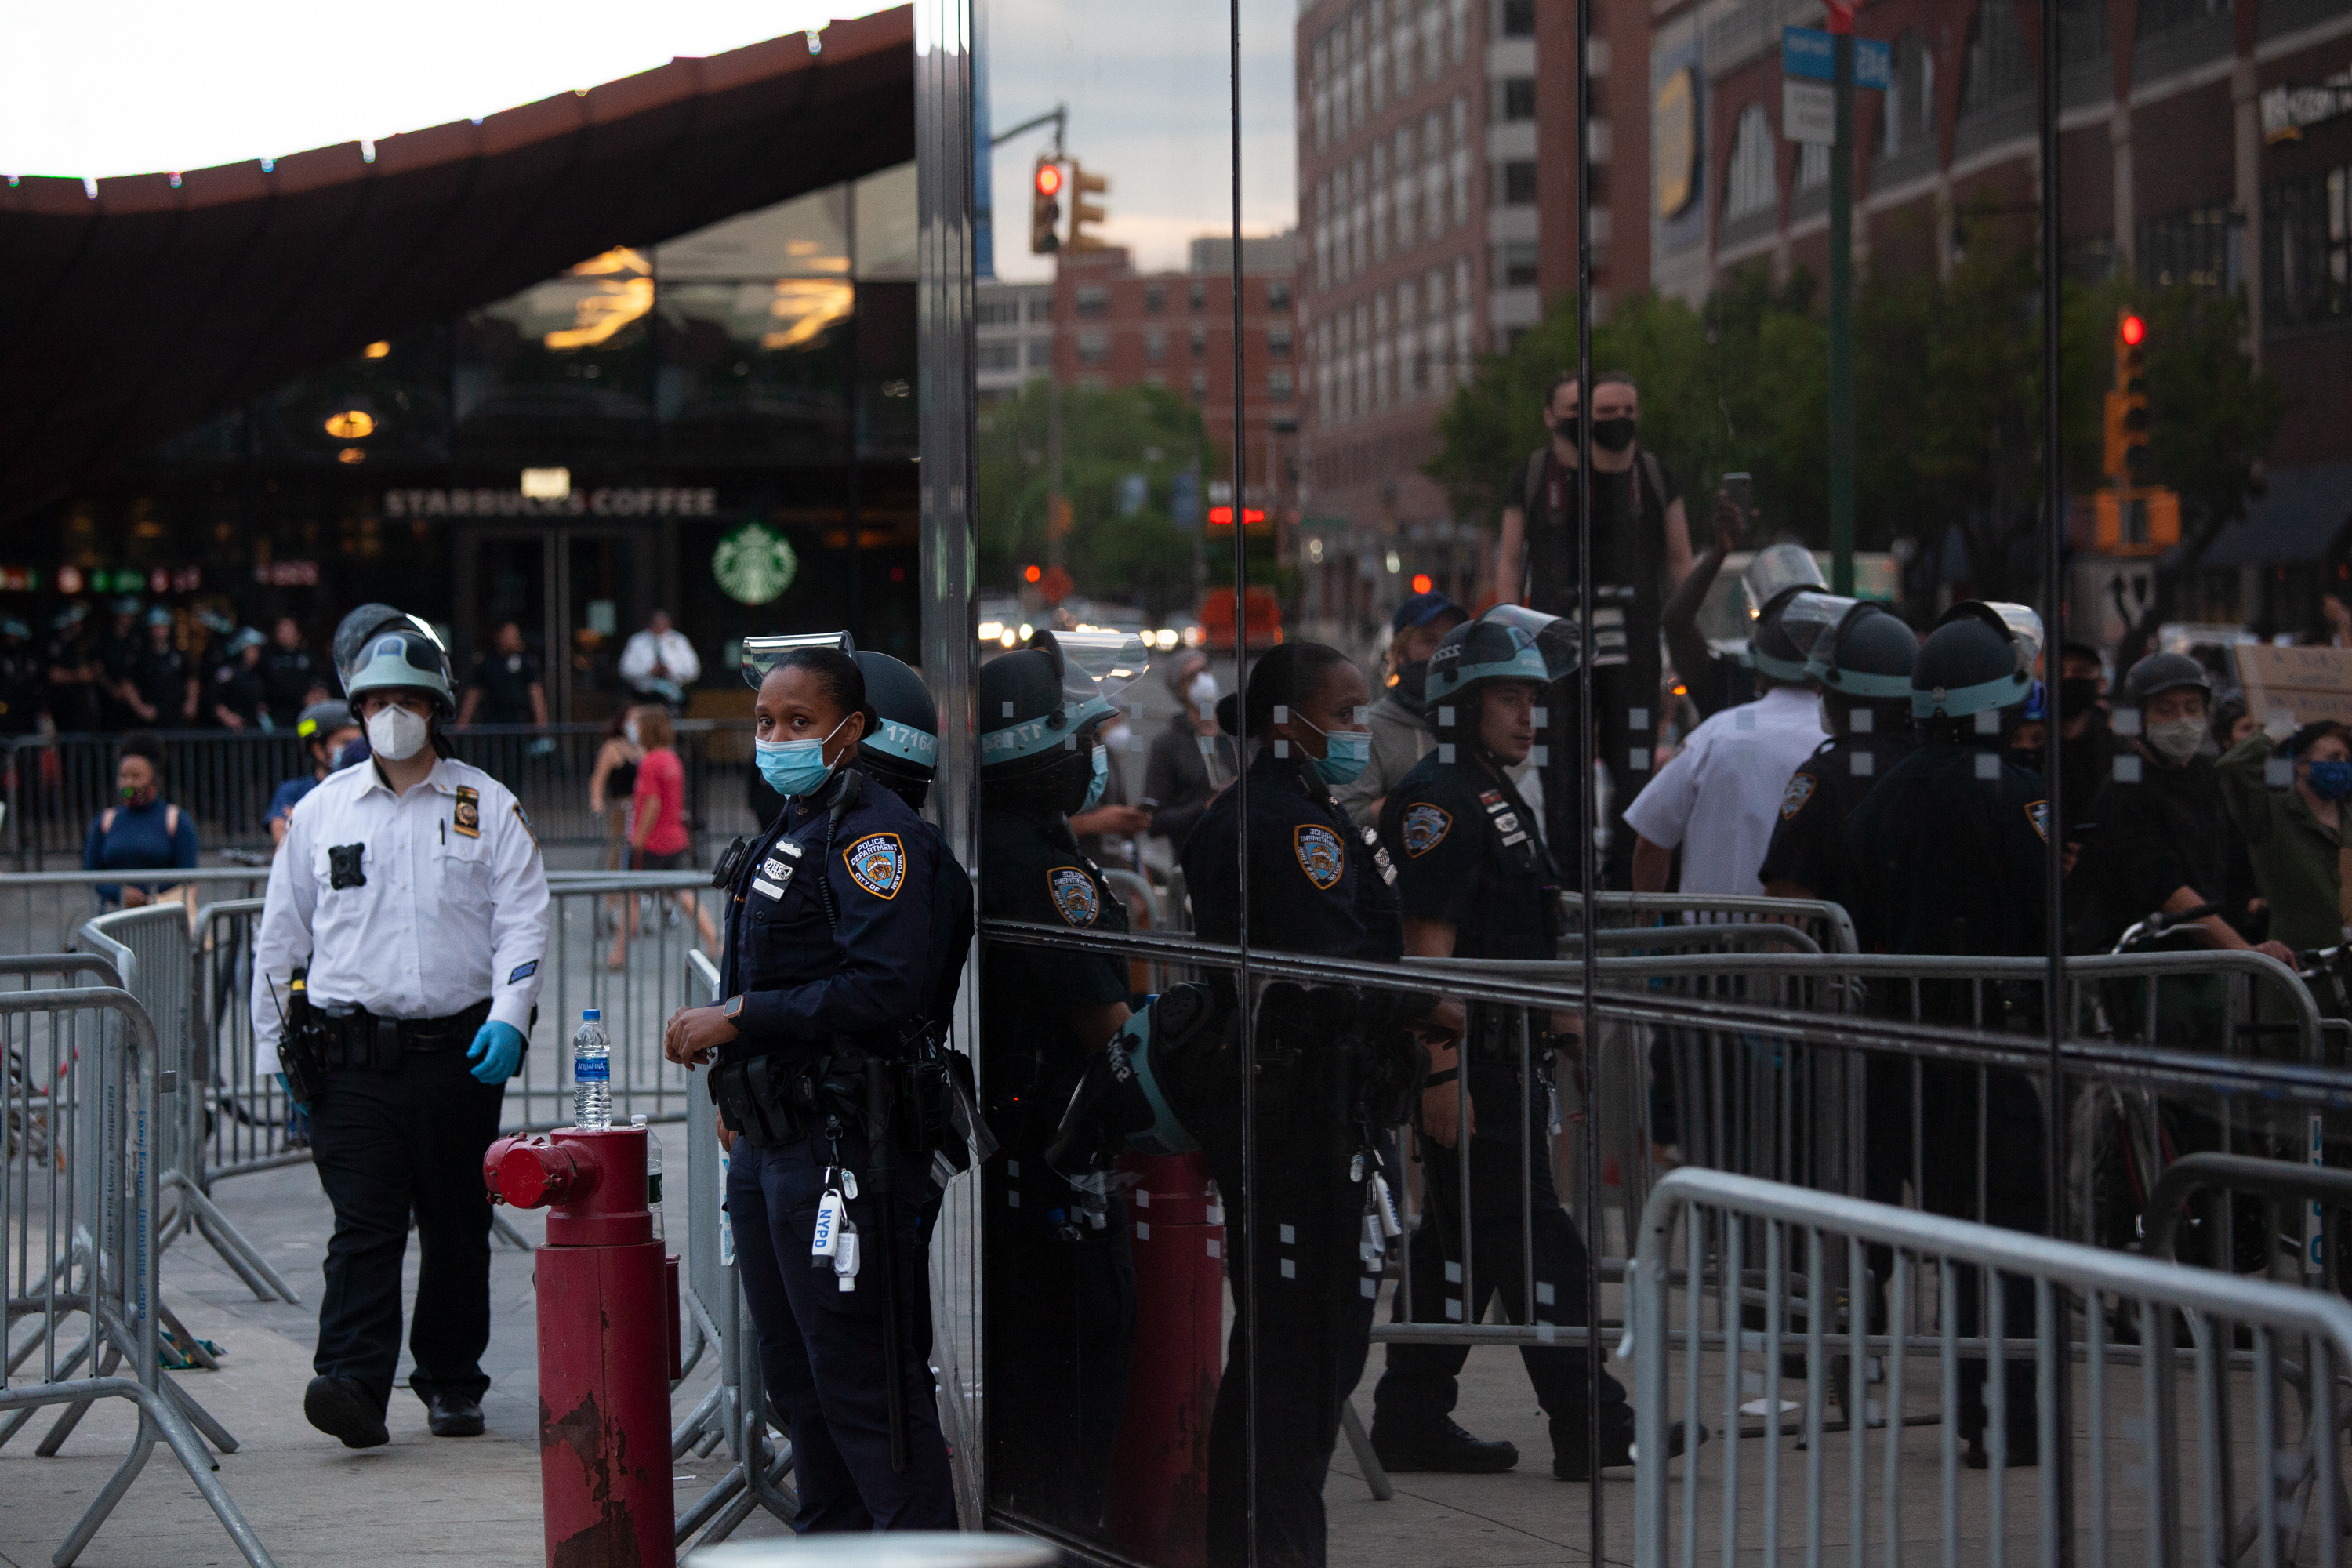 NYPD officers stand guard at the Barclays Center.